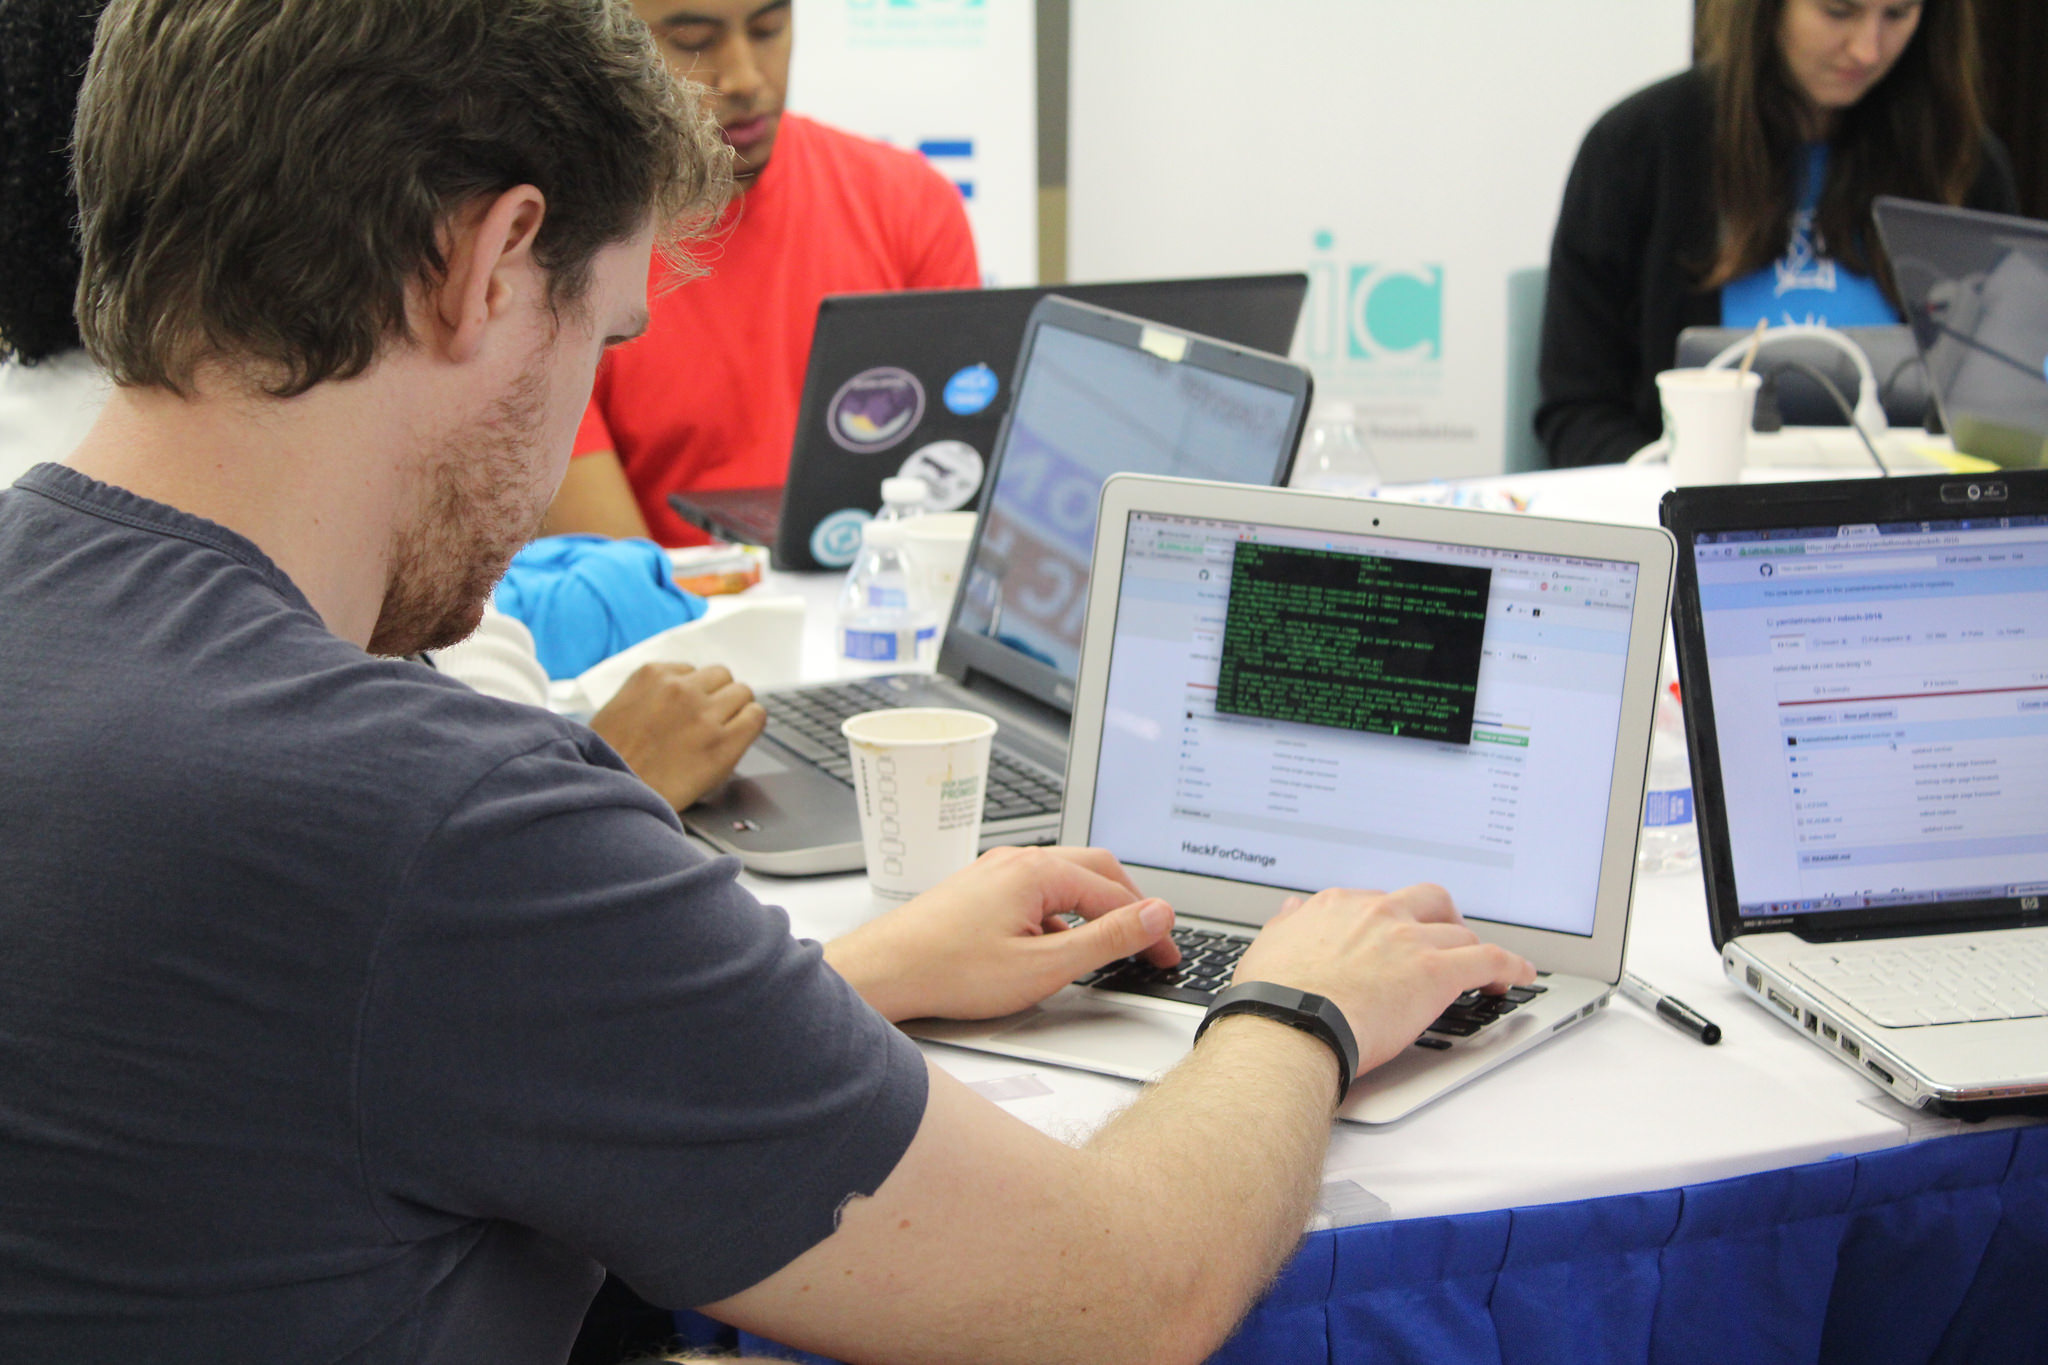 National Day of Civic Hacking teams explore better ways for government, residents to interact